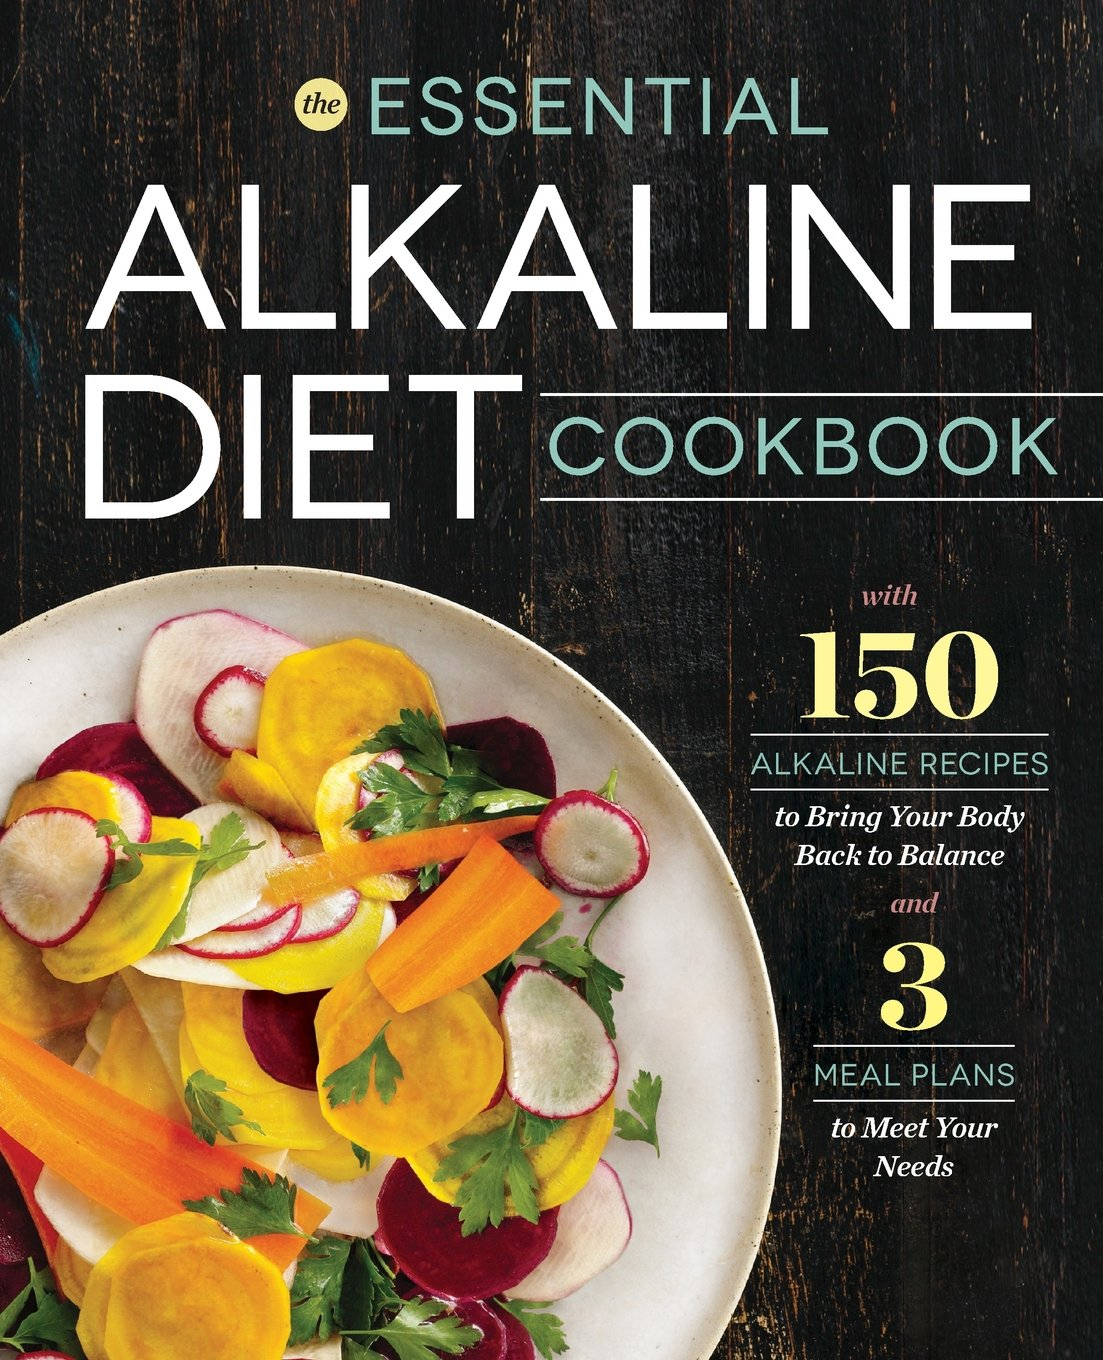 Essential Alkaline Diet Cookbook Recipes product image